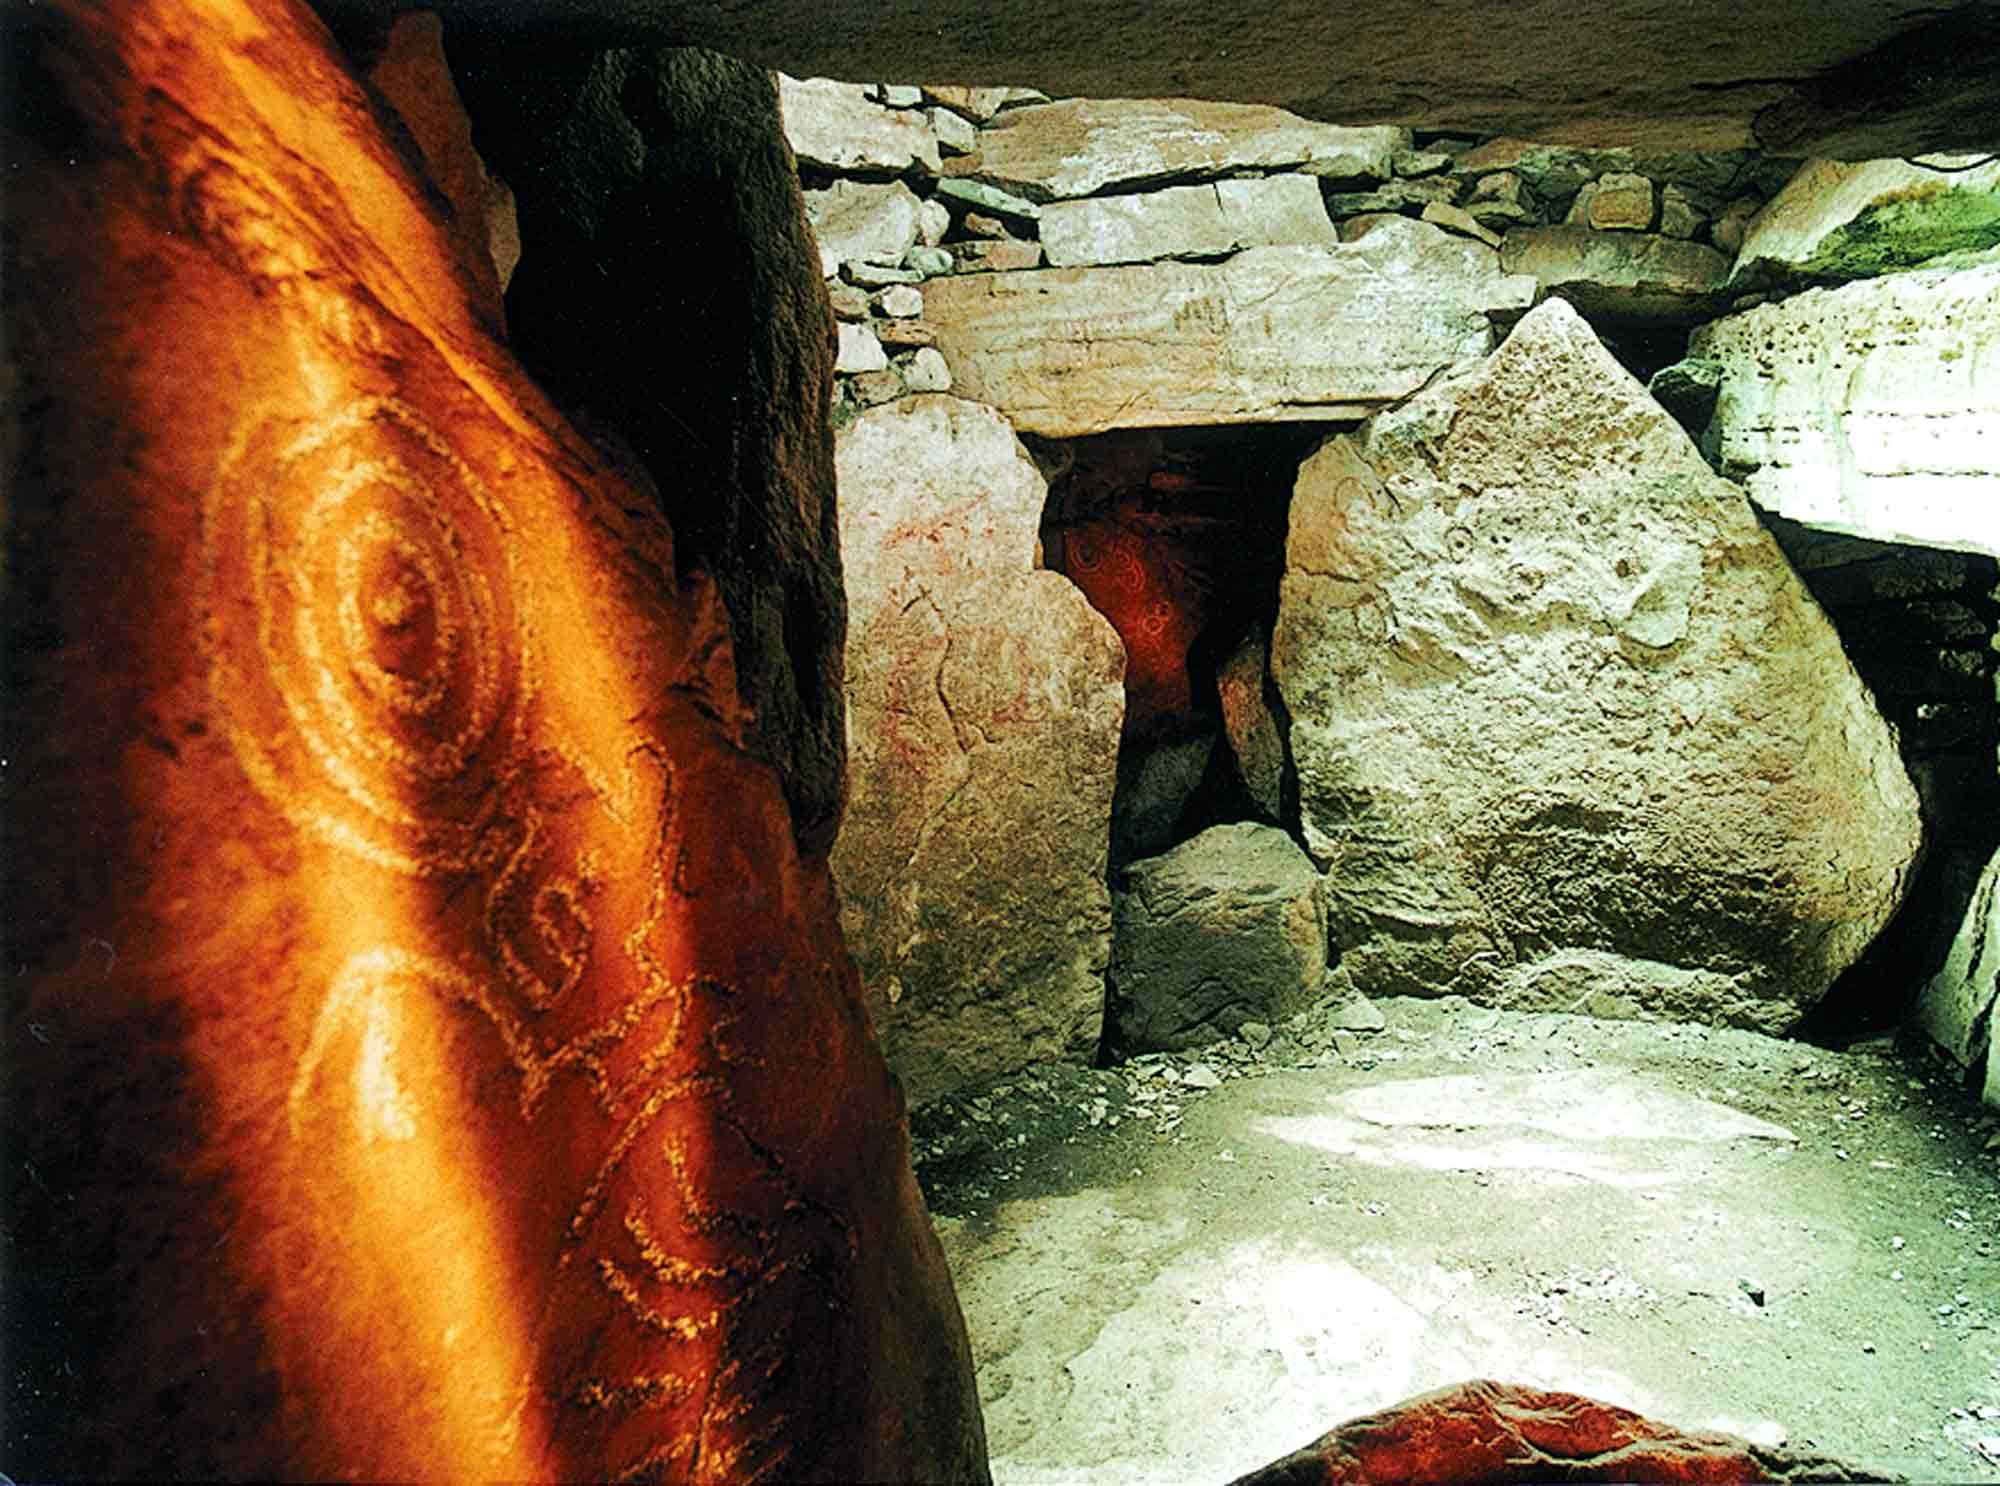 Chamber at Loughcrew Cairn